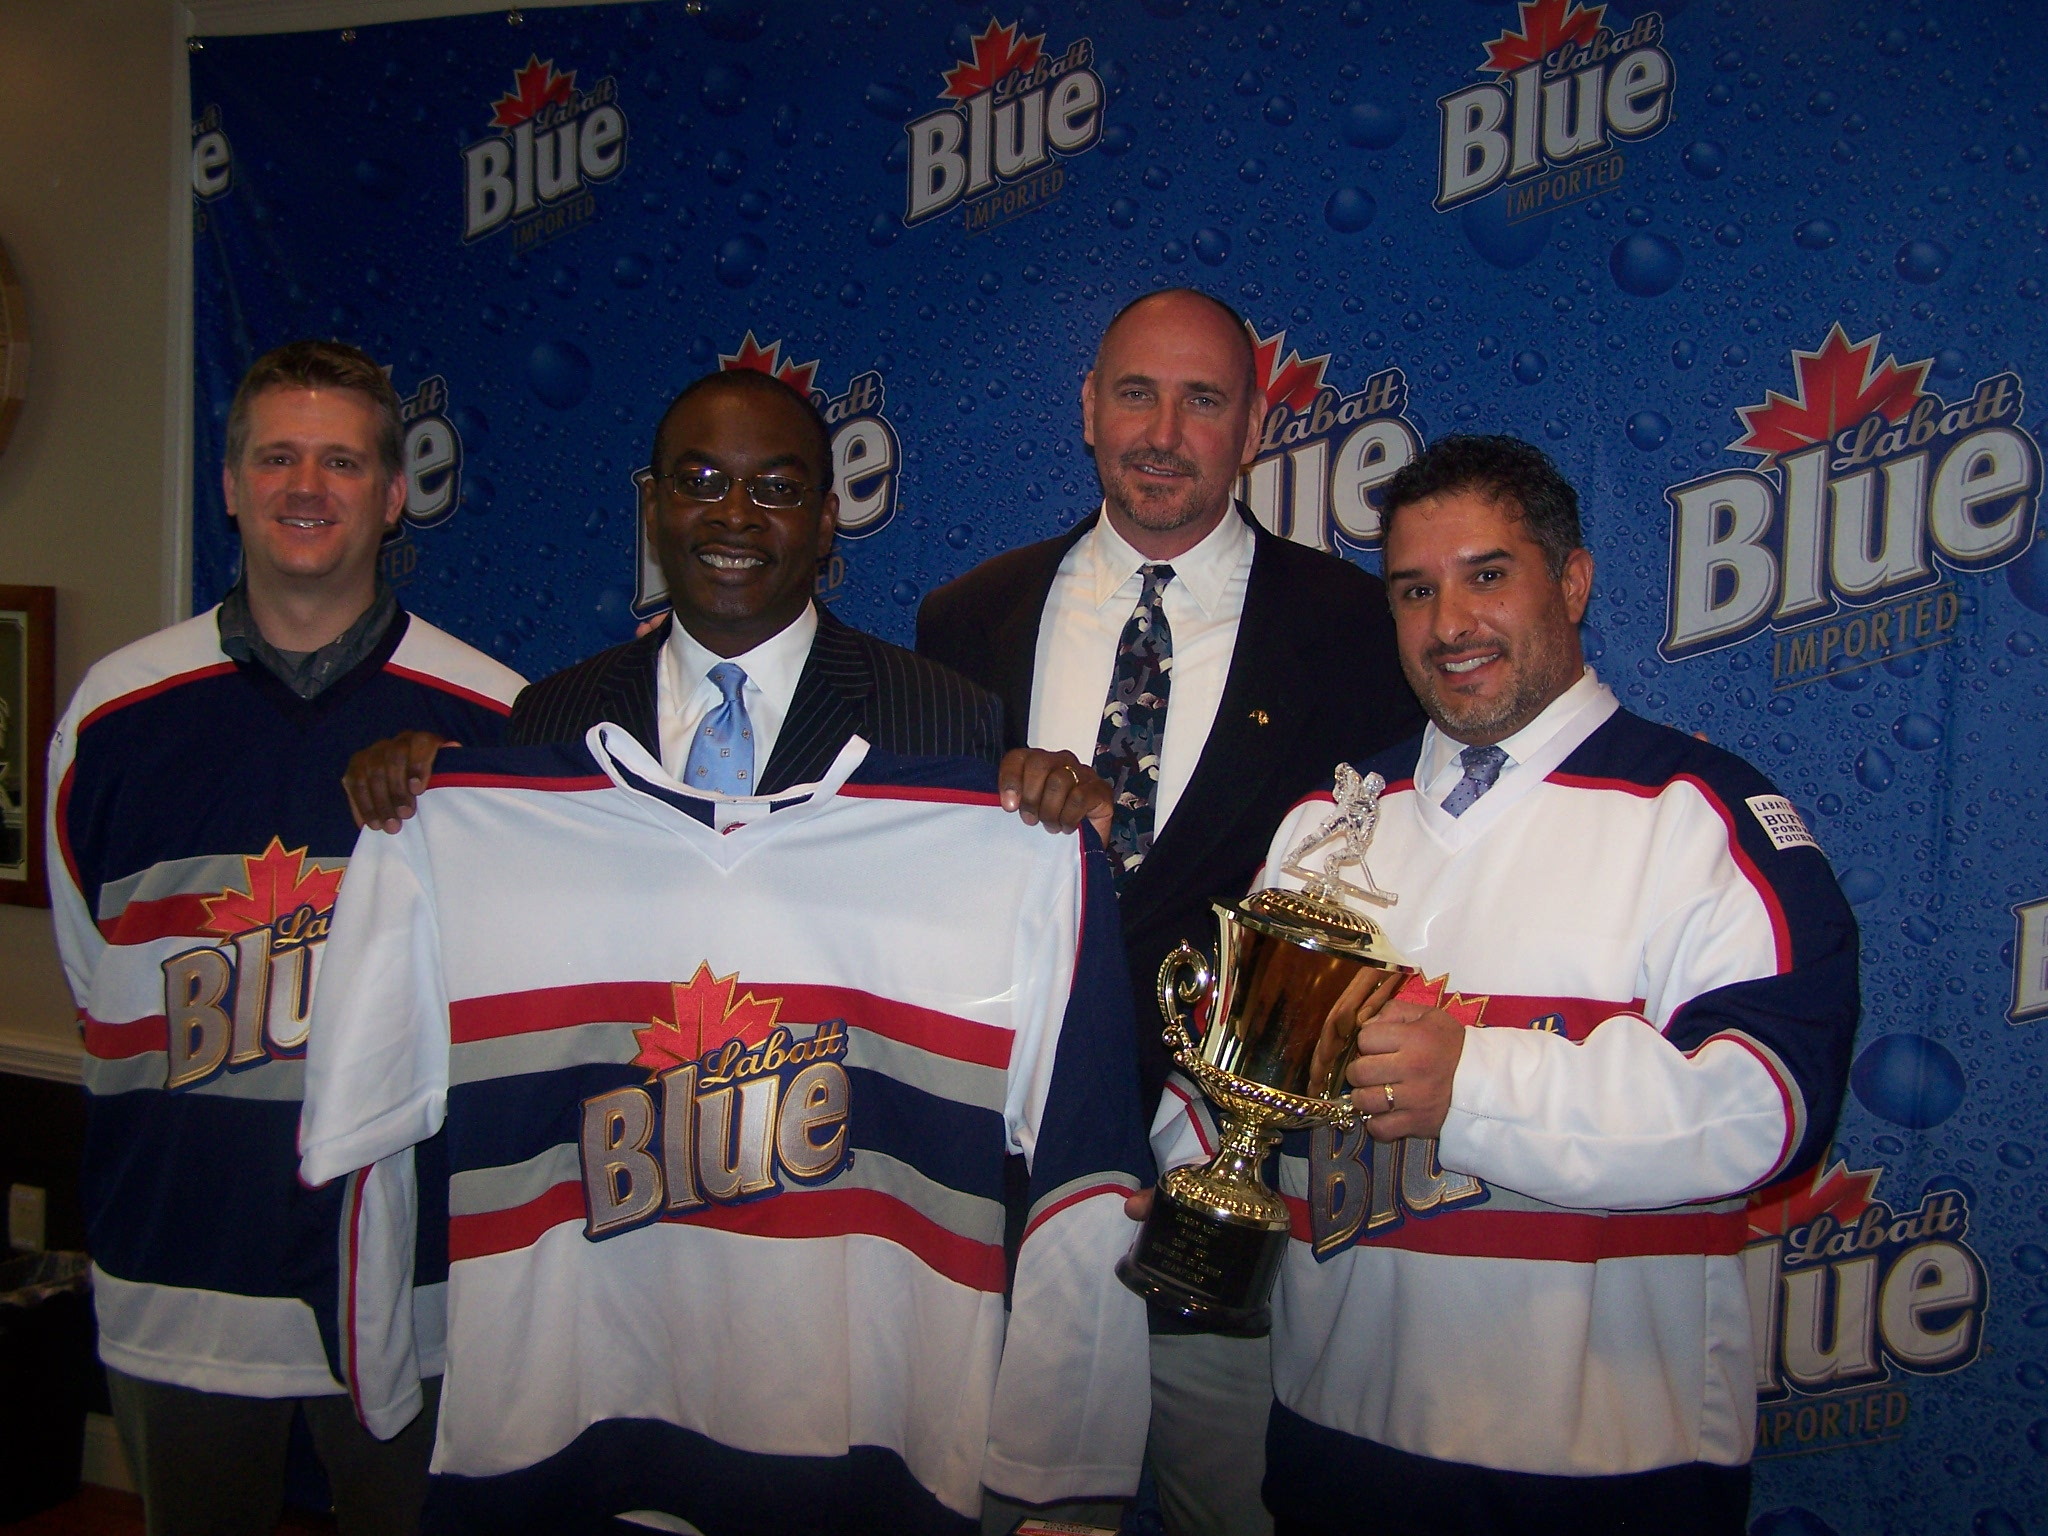 From Left to Right: Brett Carlsen, associate brand manager, Labatt Blue; The Hon. Mayor Byron Brown, City of Buffalo; Commissioner Steve Stepniak, City of Buffalo, and Don Poleto, operations engineer, City of Buffalo Public Works